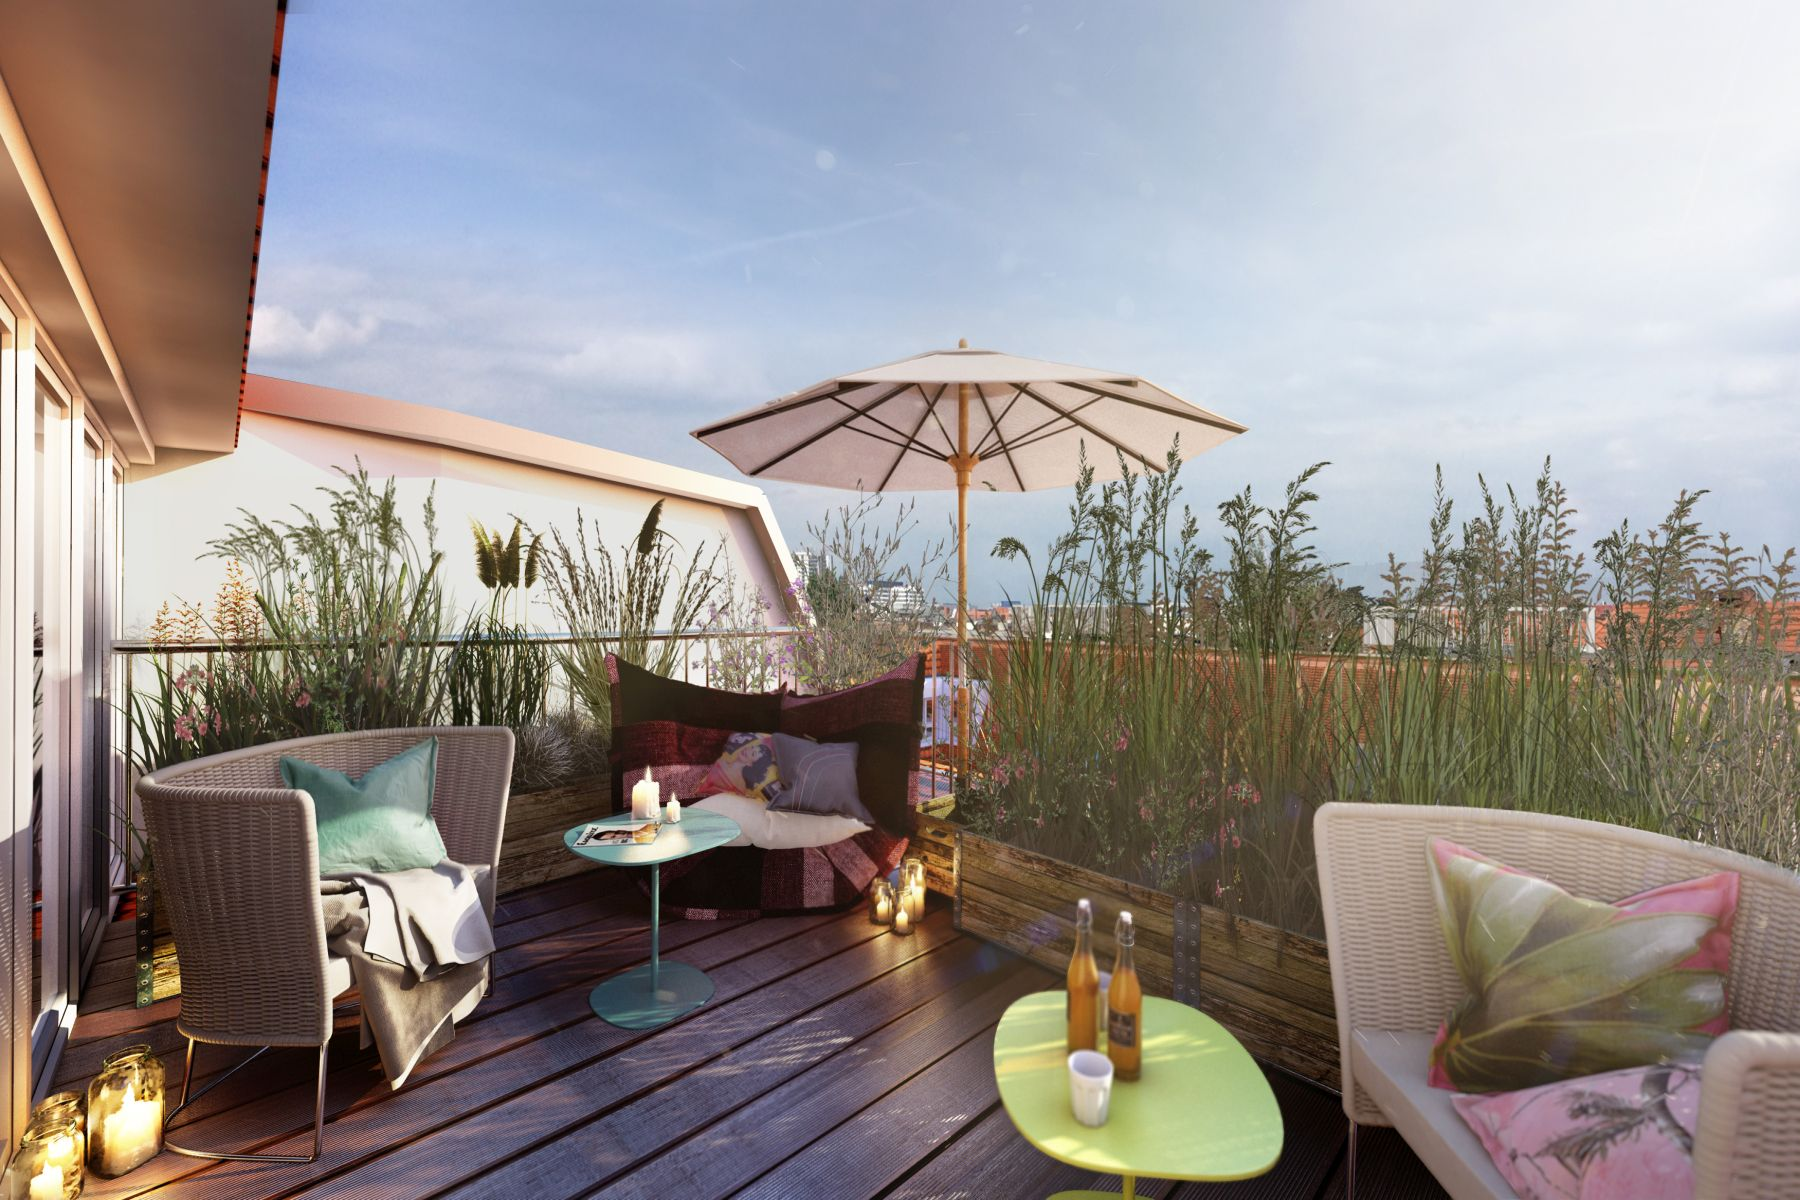 Single Family Home for Sale at Exclusive Penthouse with roof terrace with view over Berlin! Berlin, Berlin, 10629 Germany